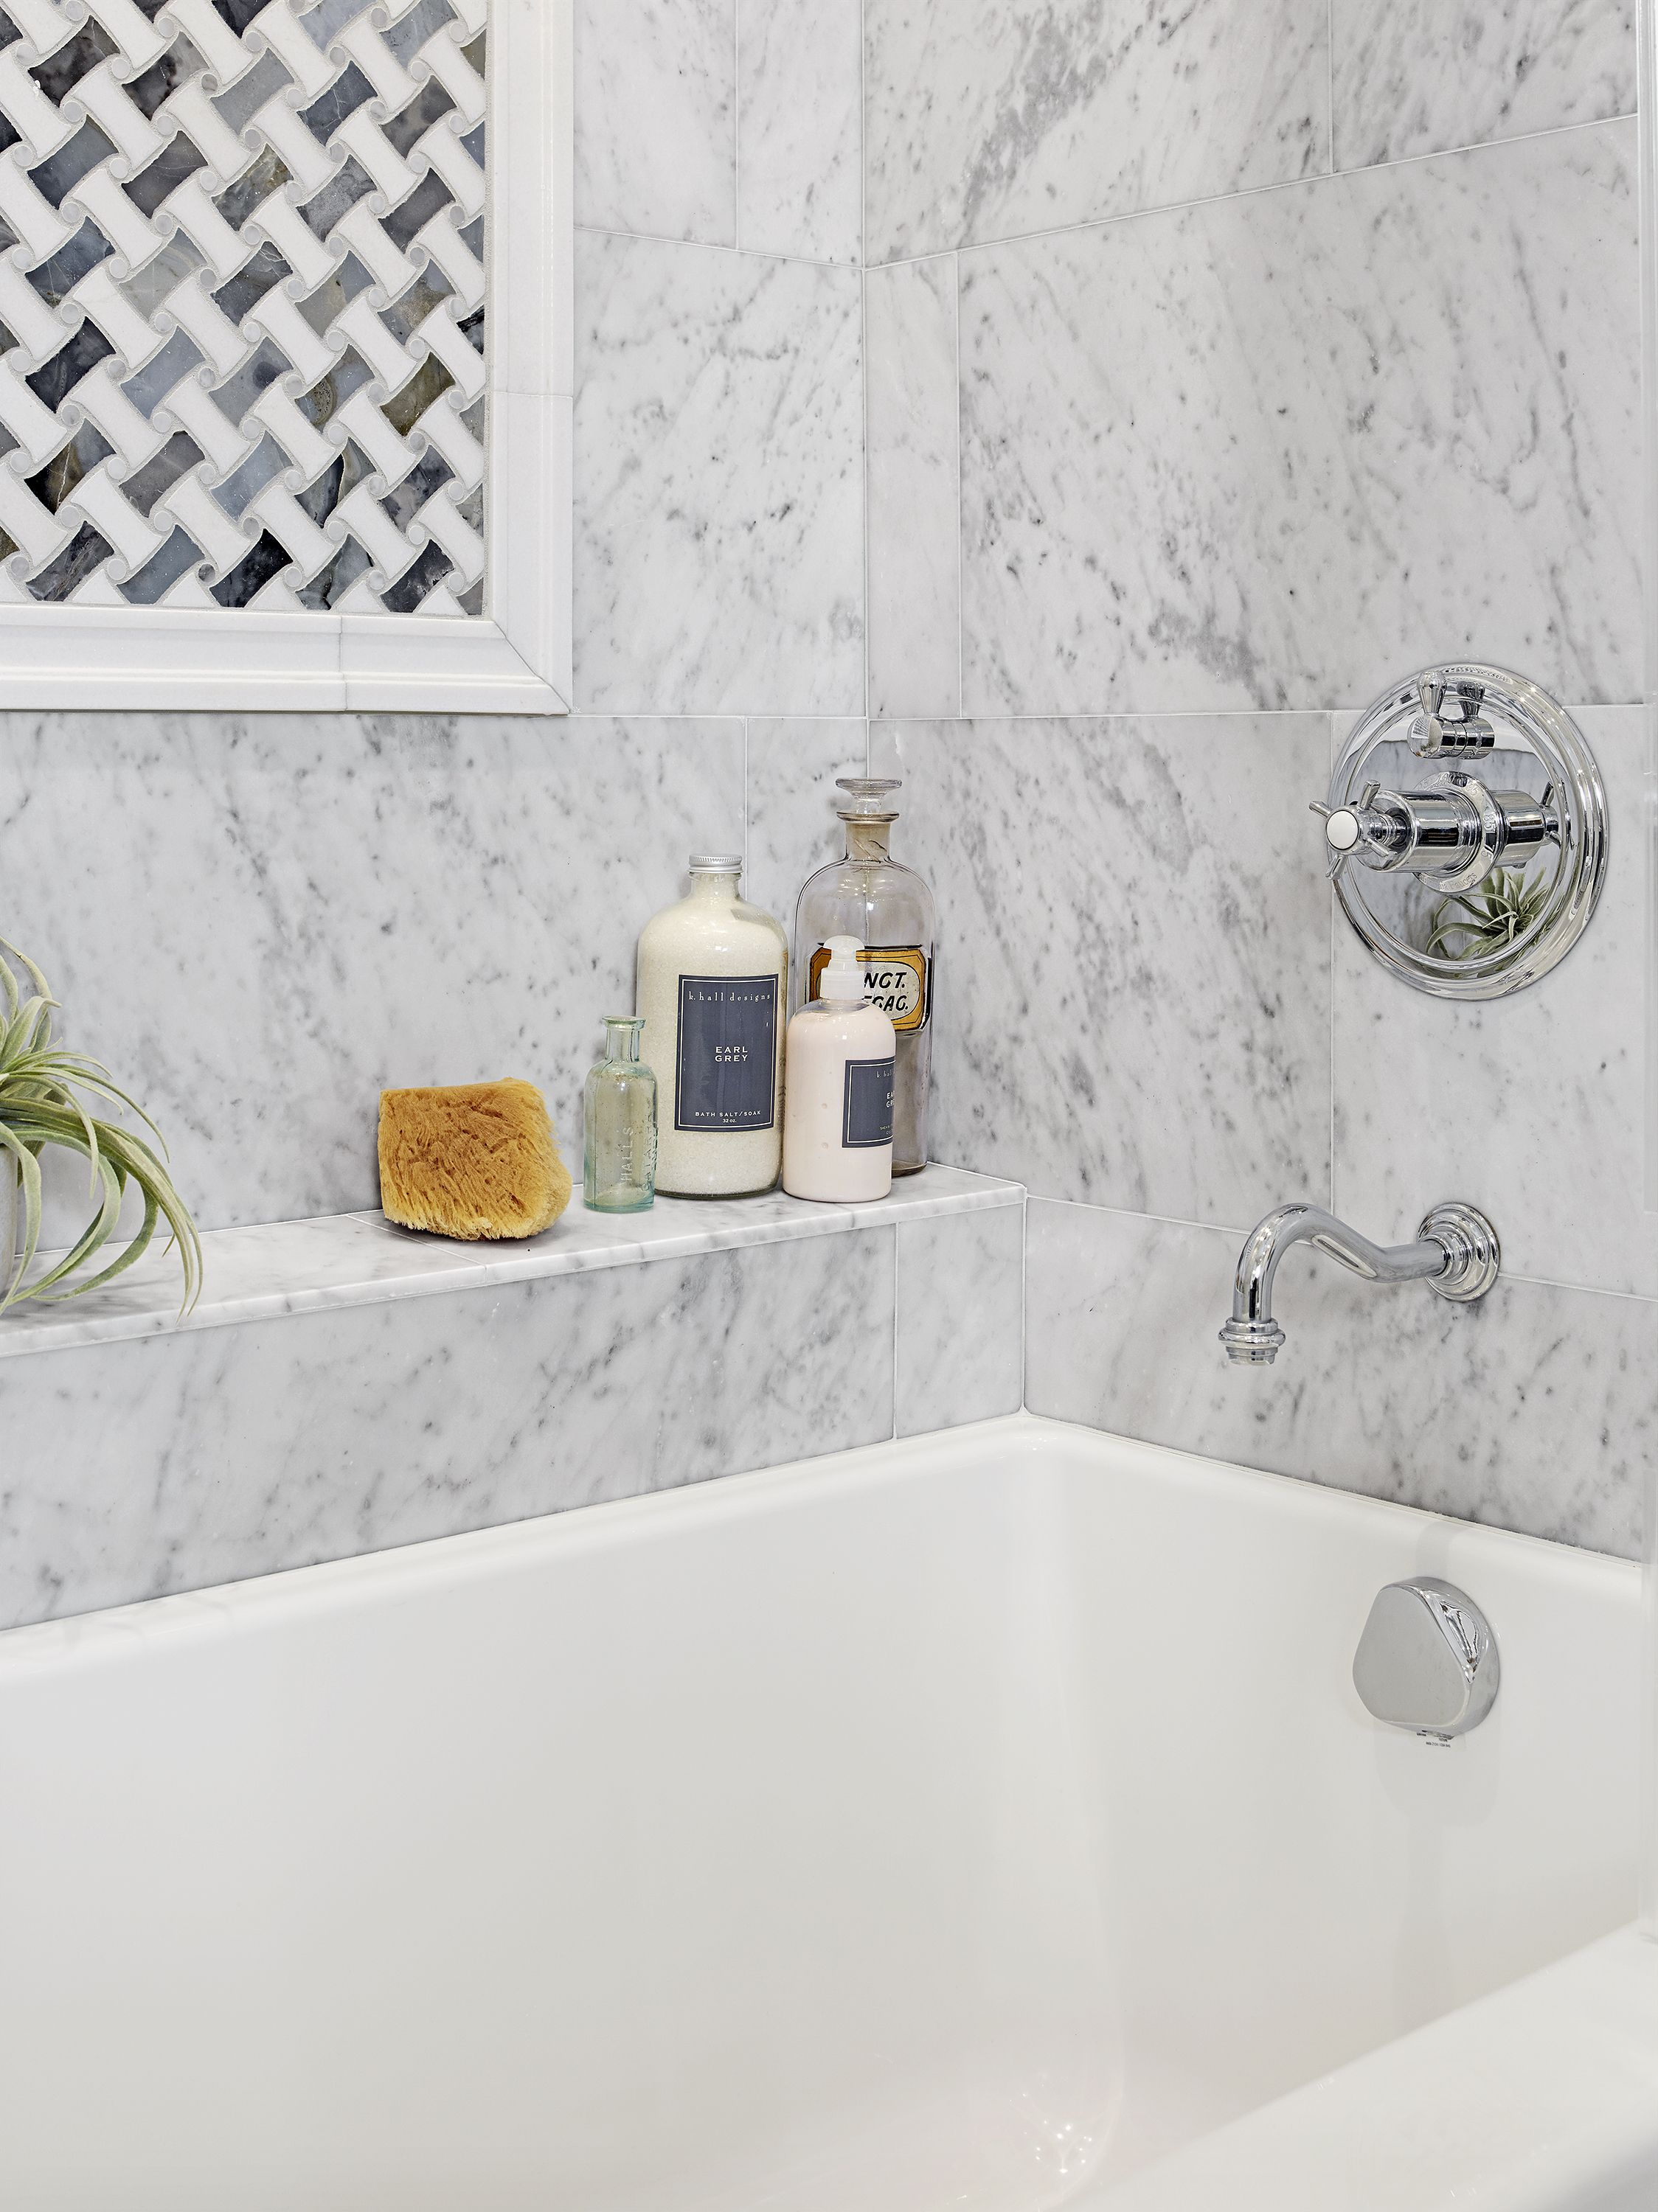 Before And After A Small Bath Gets An Artful Upgrade Small Bath